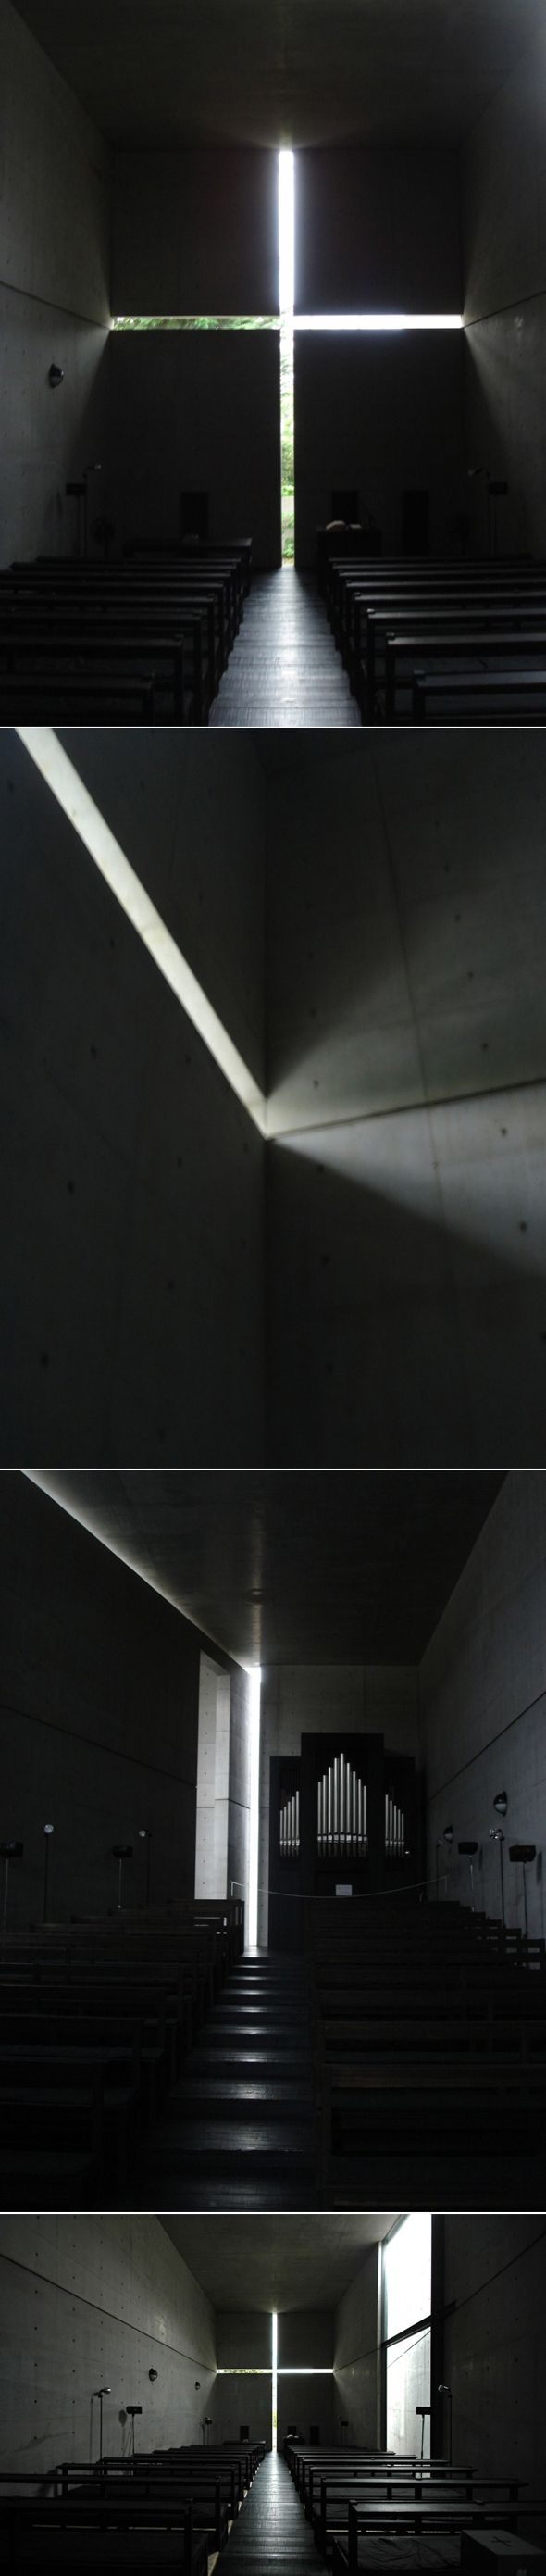 Tadao Ando, Church of the Light, Ibaraki Osaka